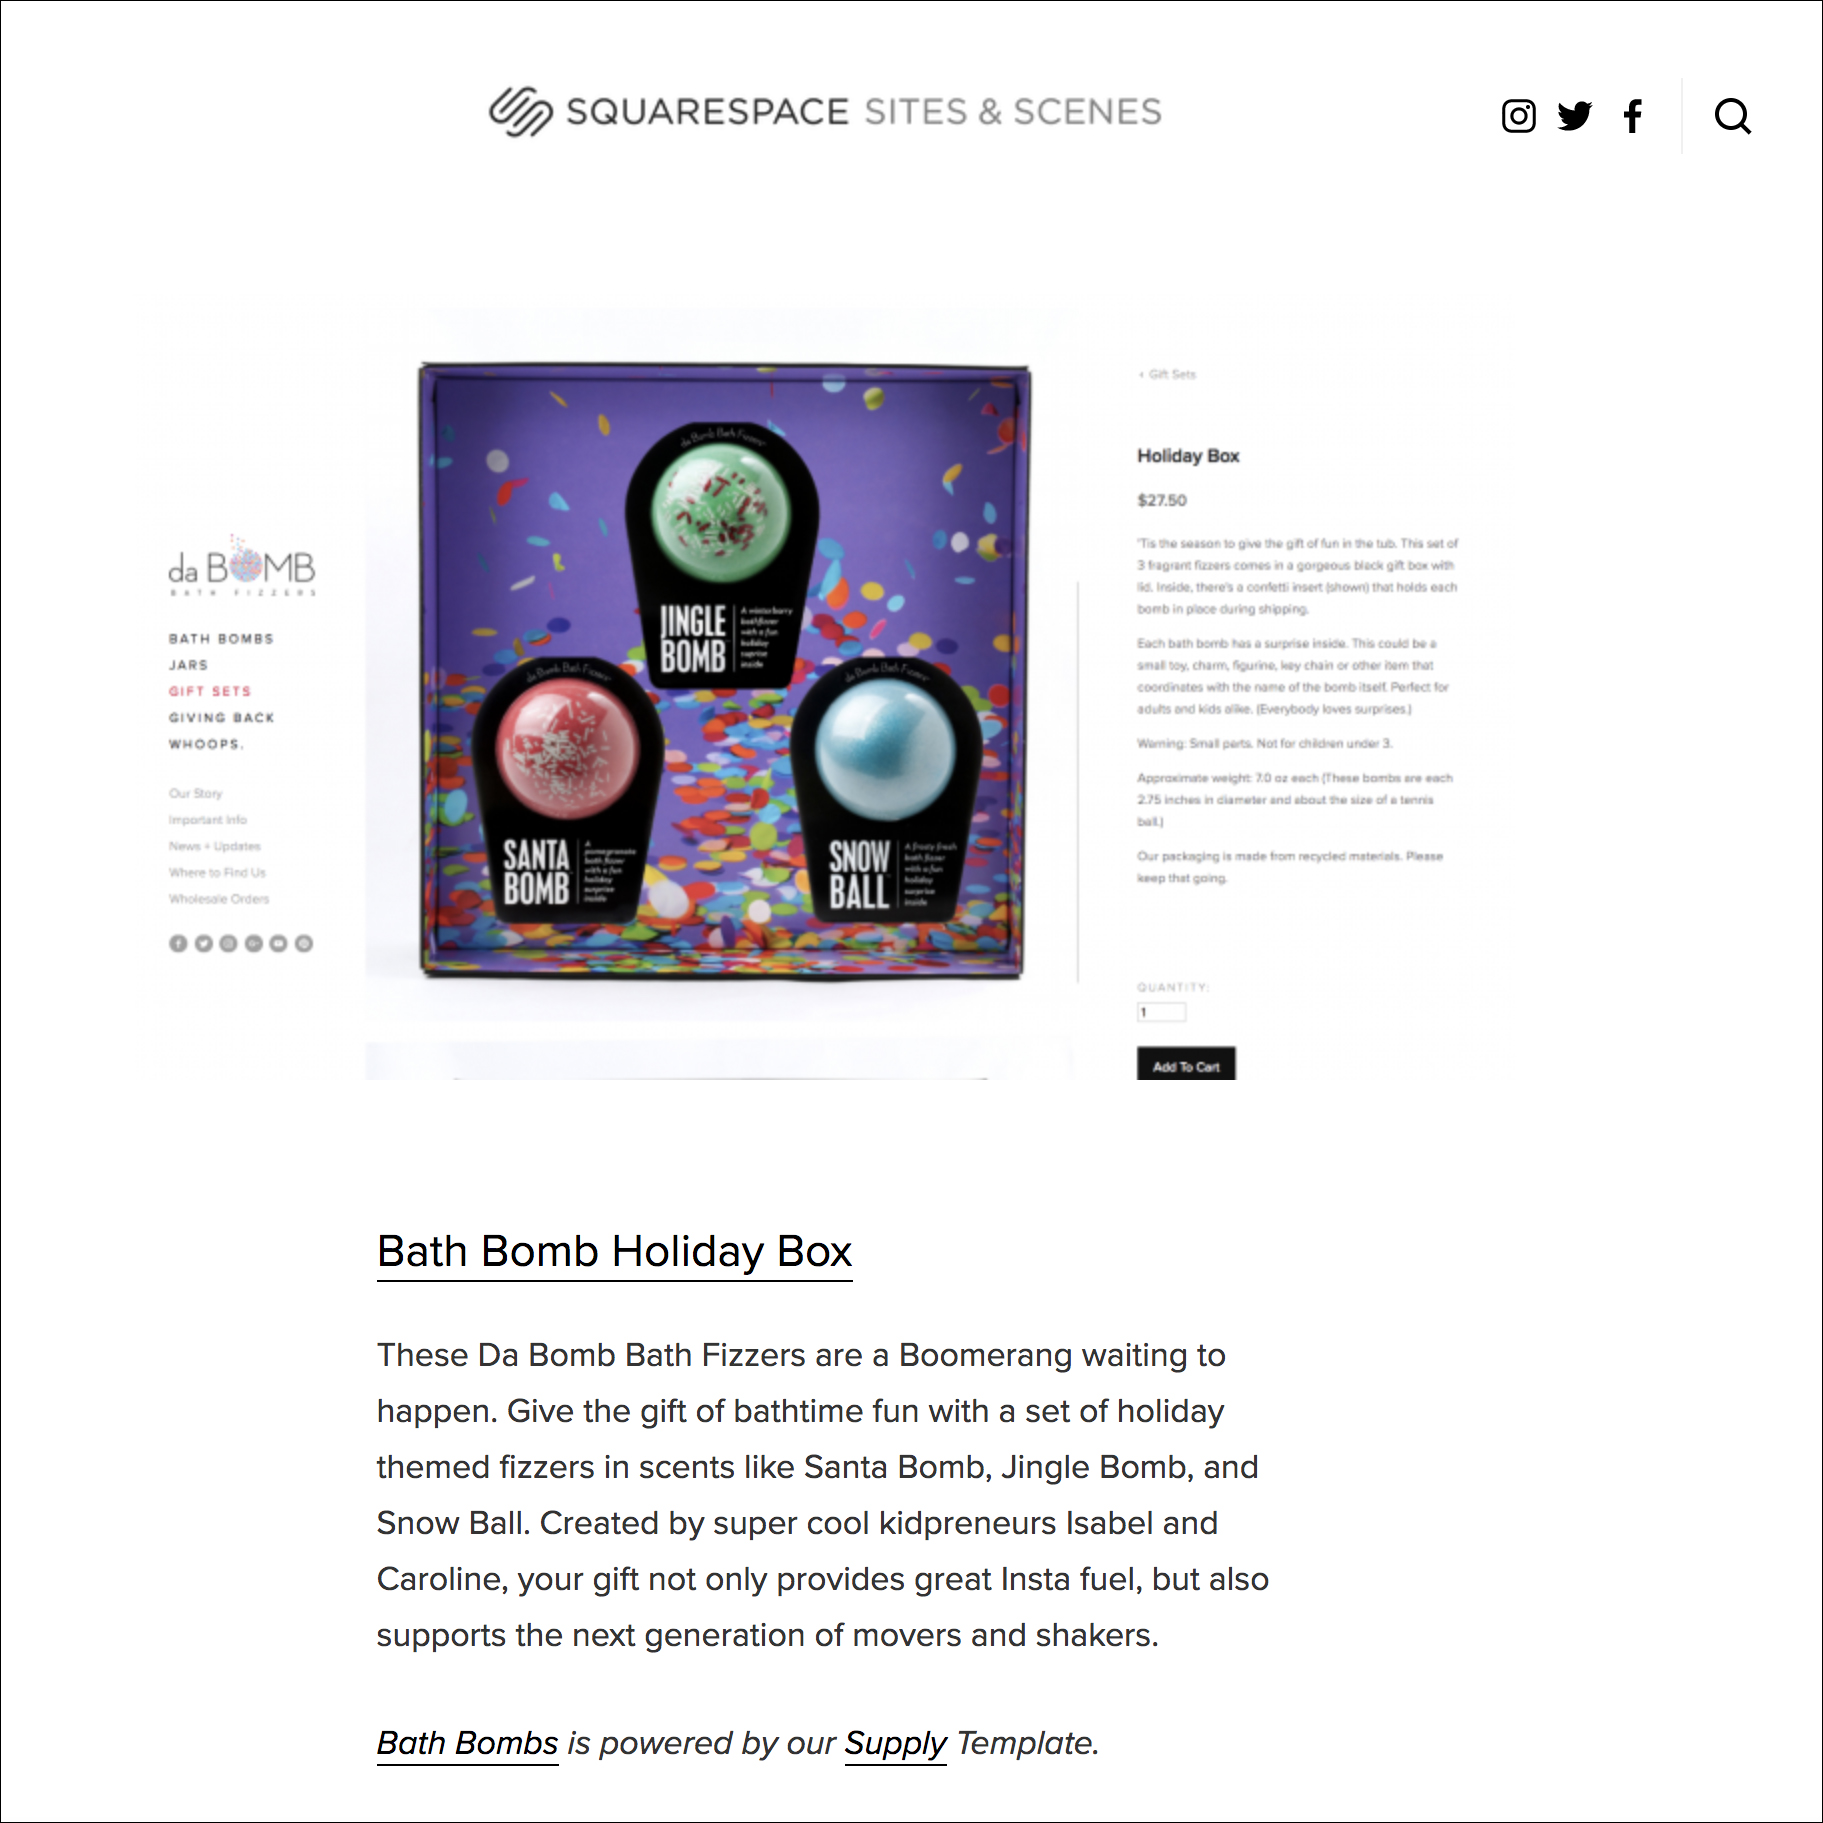 Da Bomb Bath Fizzers holiday box in squarespace article as gift for insta star. Links to article.